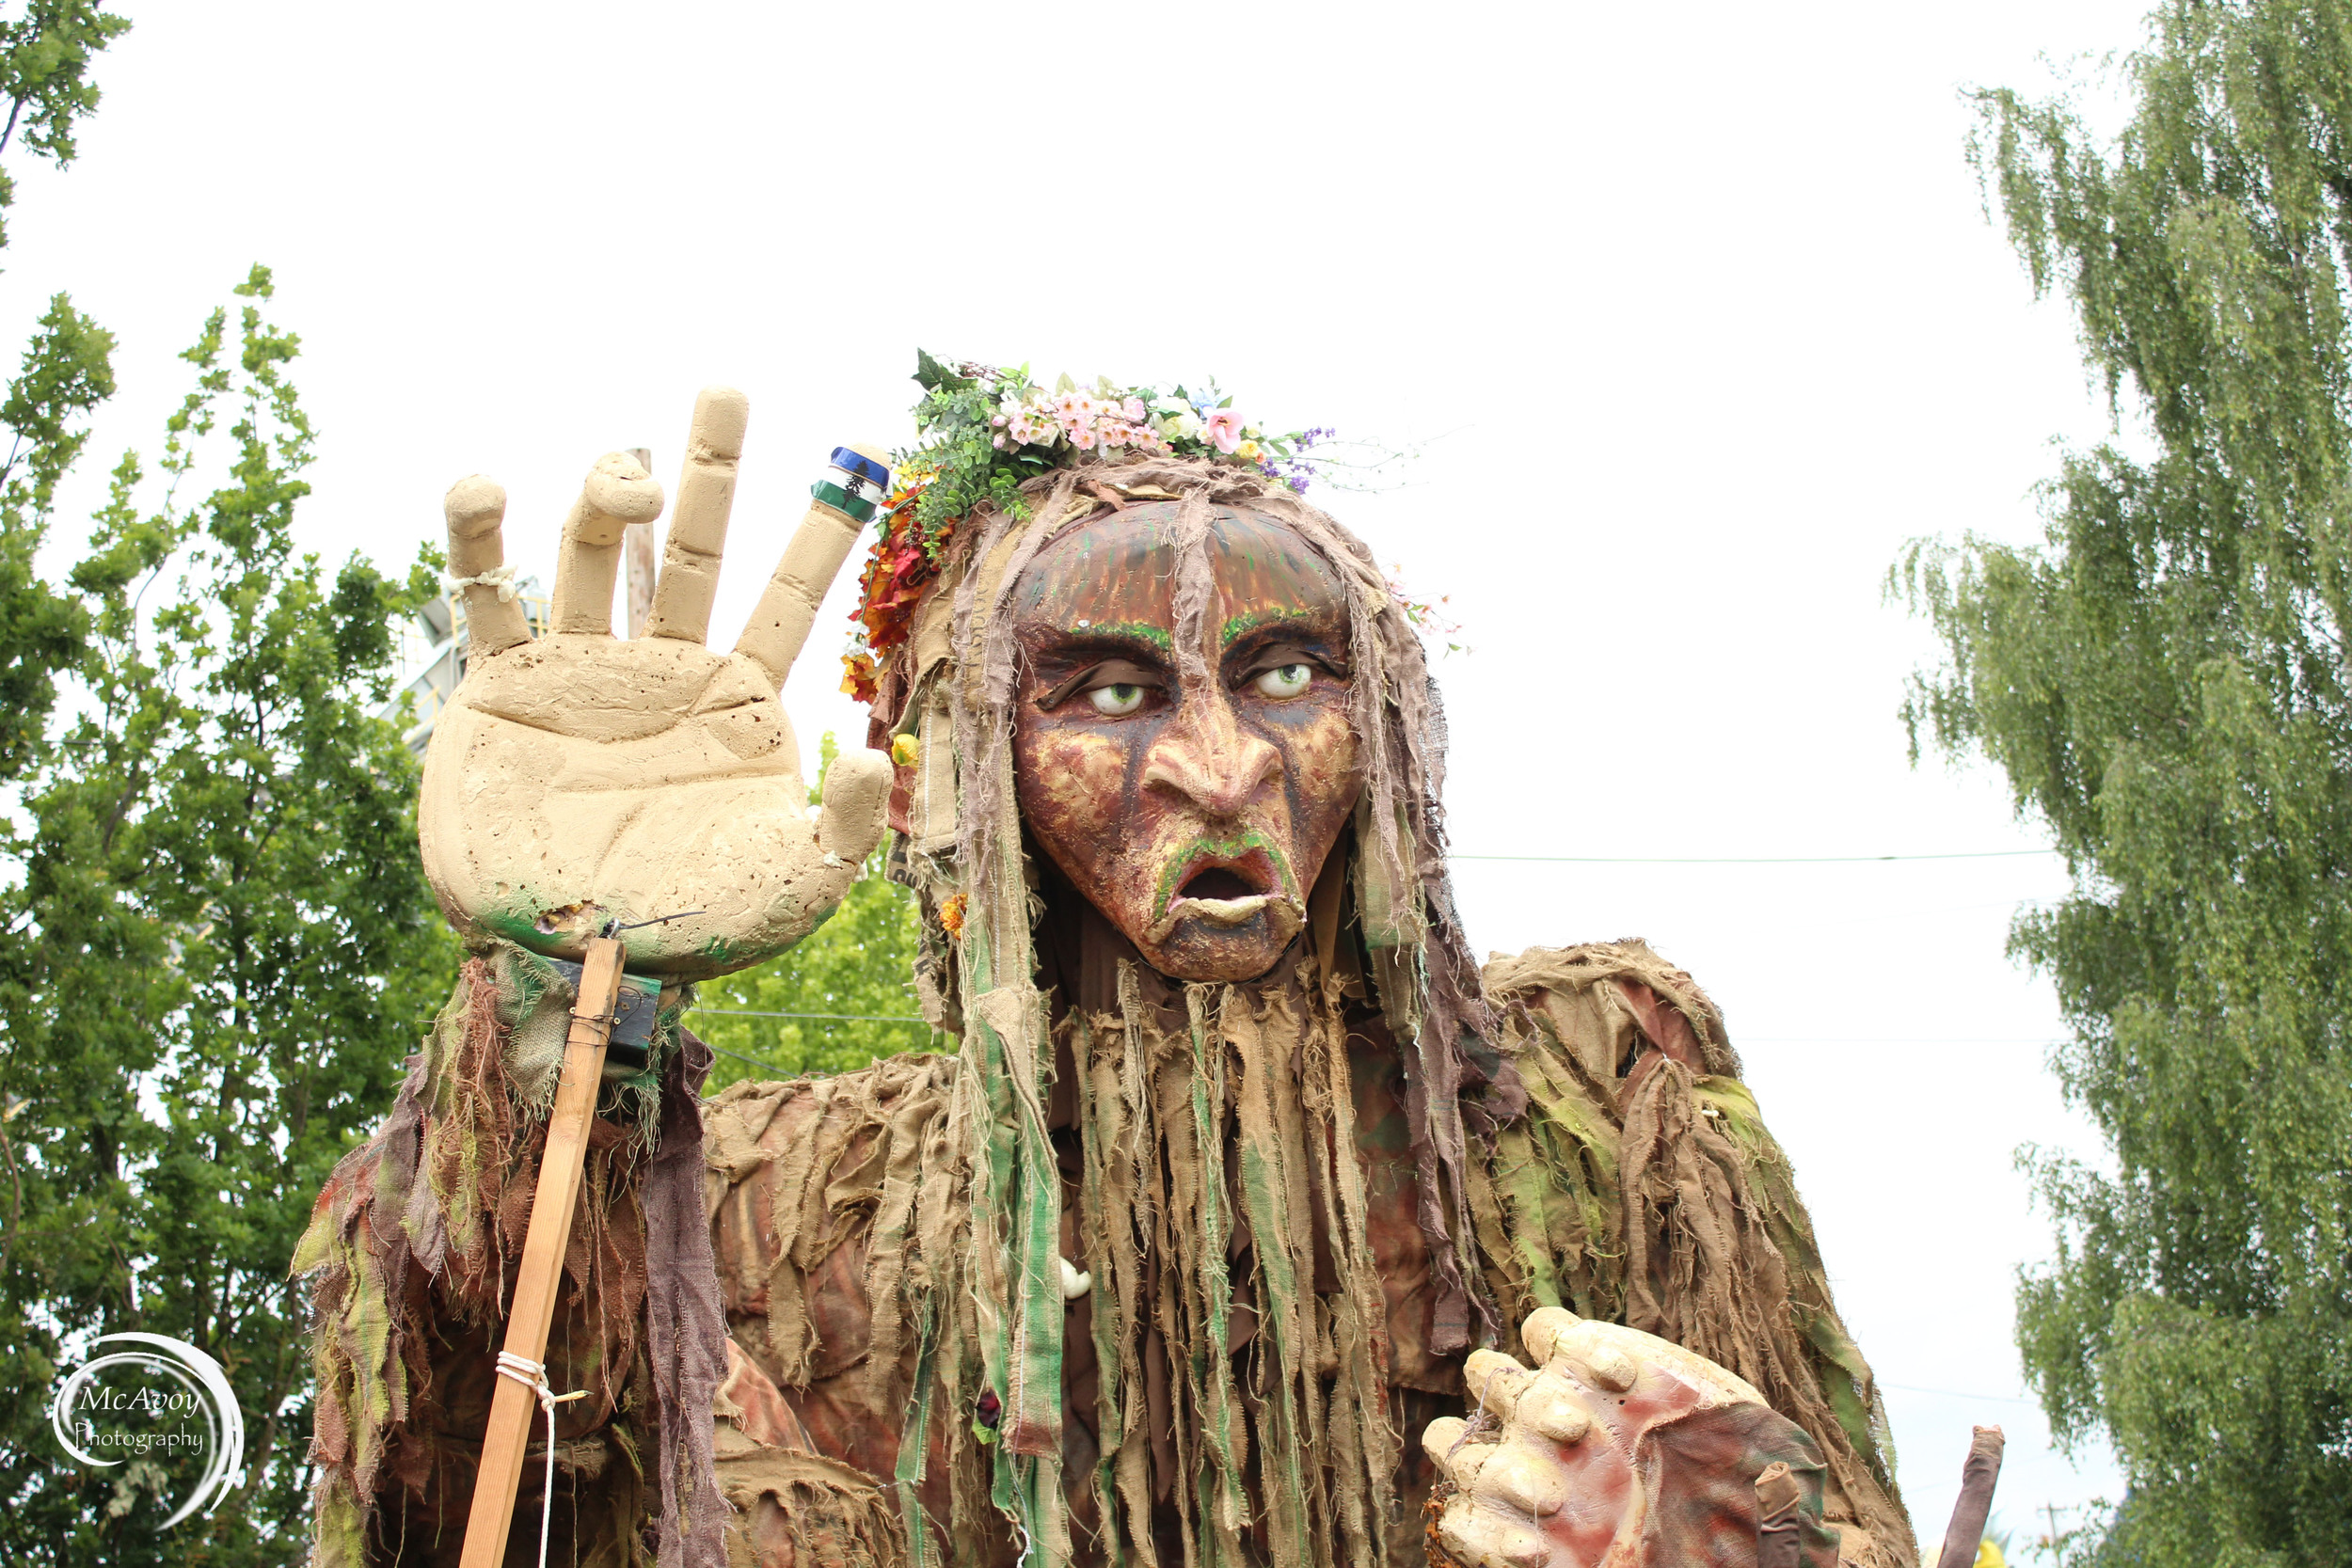 The CascadiaNow! Sasquatch made its second appearance at the parade. CascadiaNow! volunteers and Mythica Village members helped with its construction and upkeep this year. Some of the props made by Mythica Village members will be used in the Cascadia Northwest festival in July .